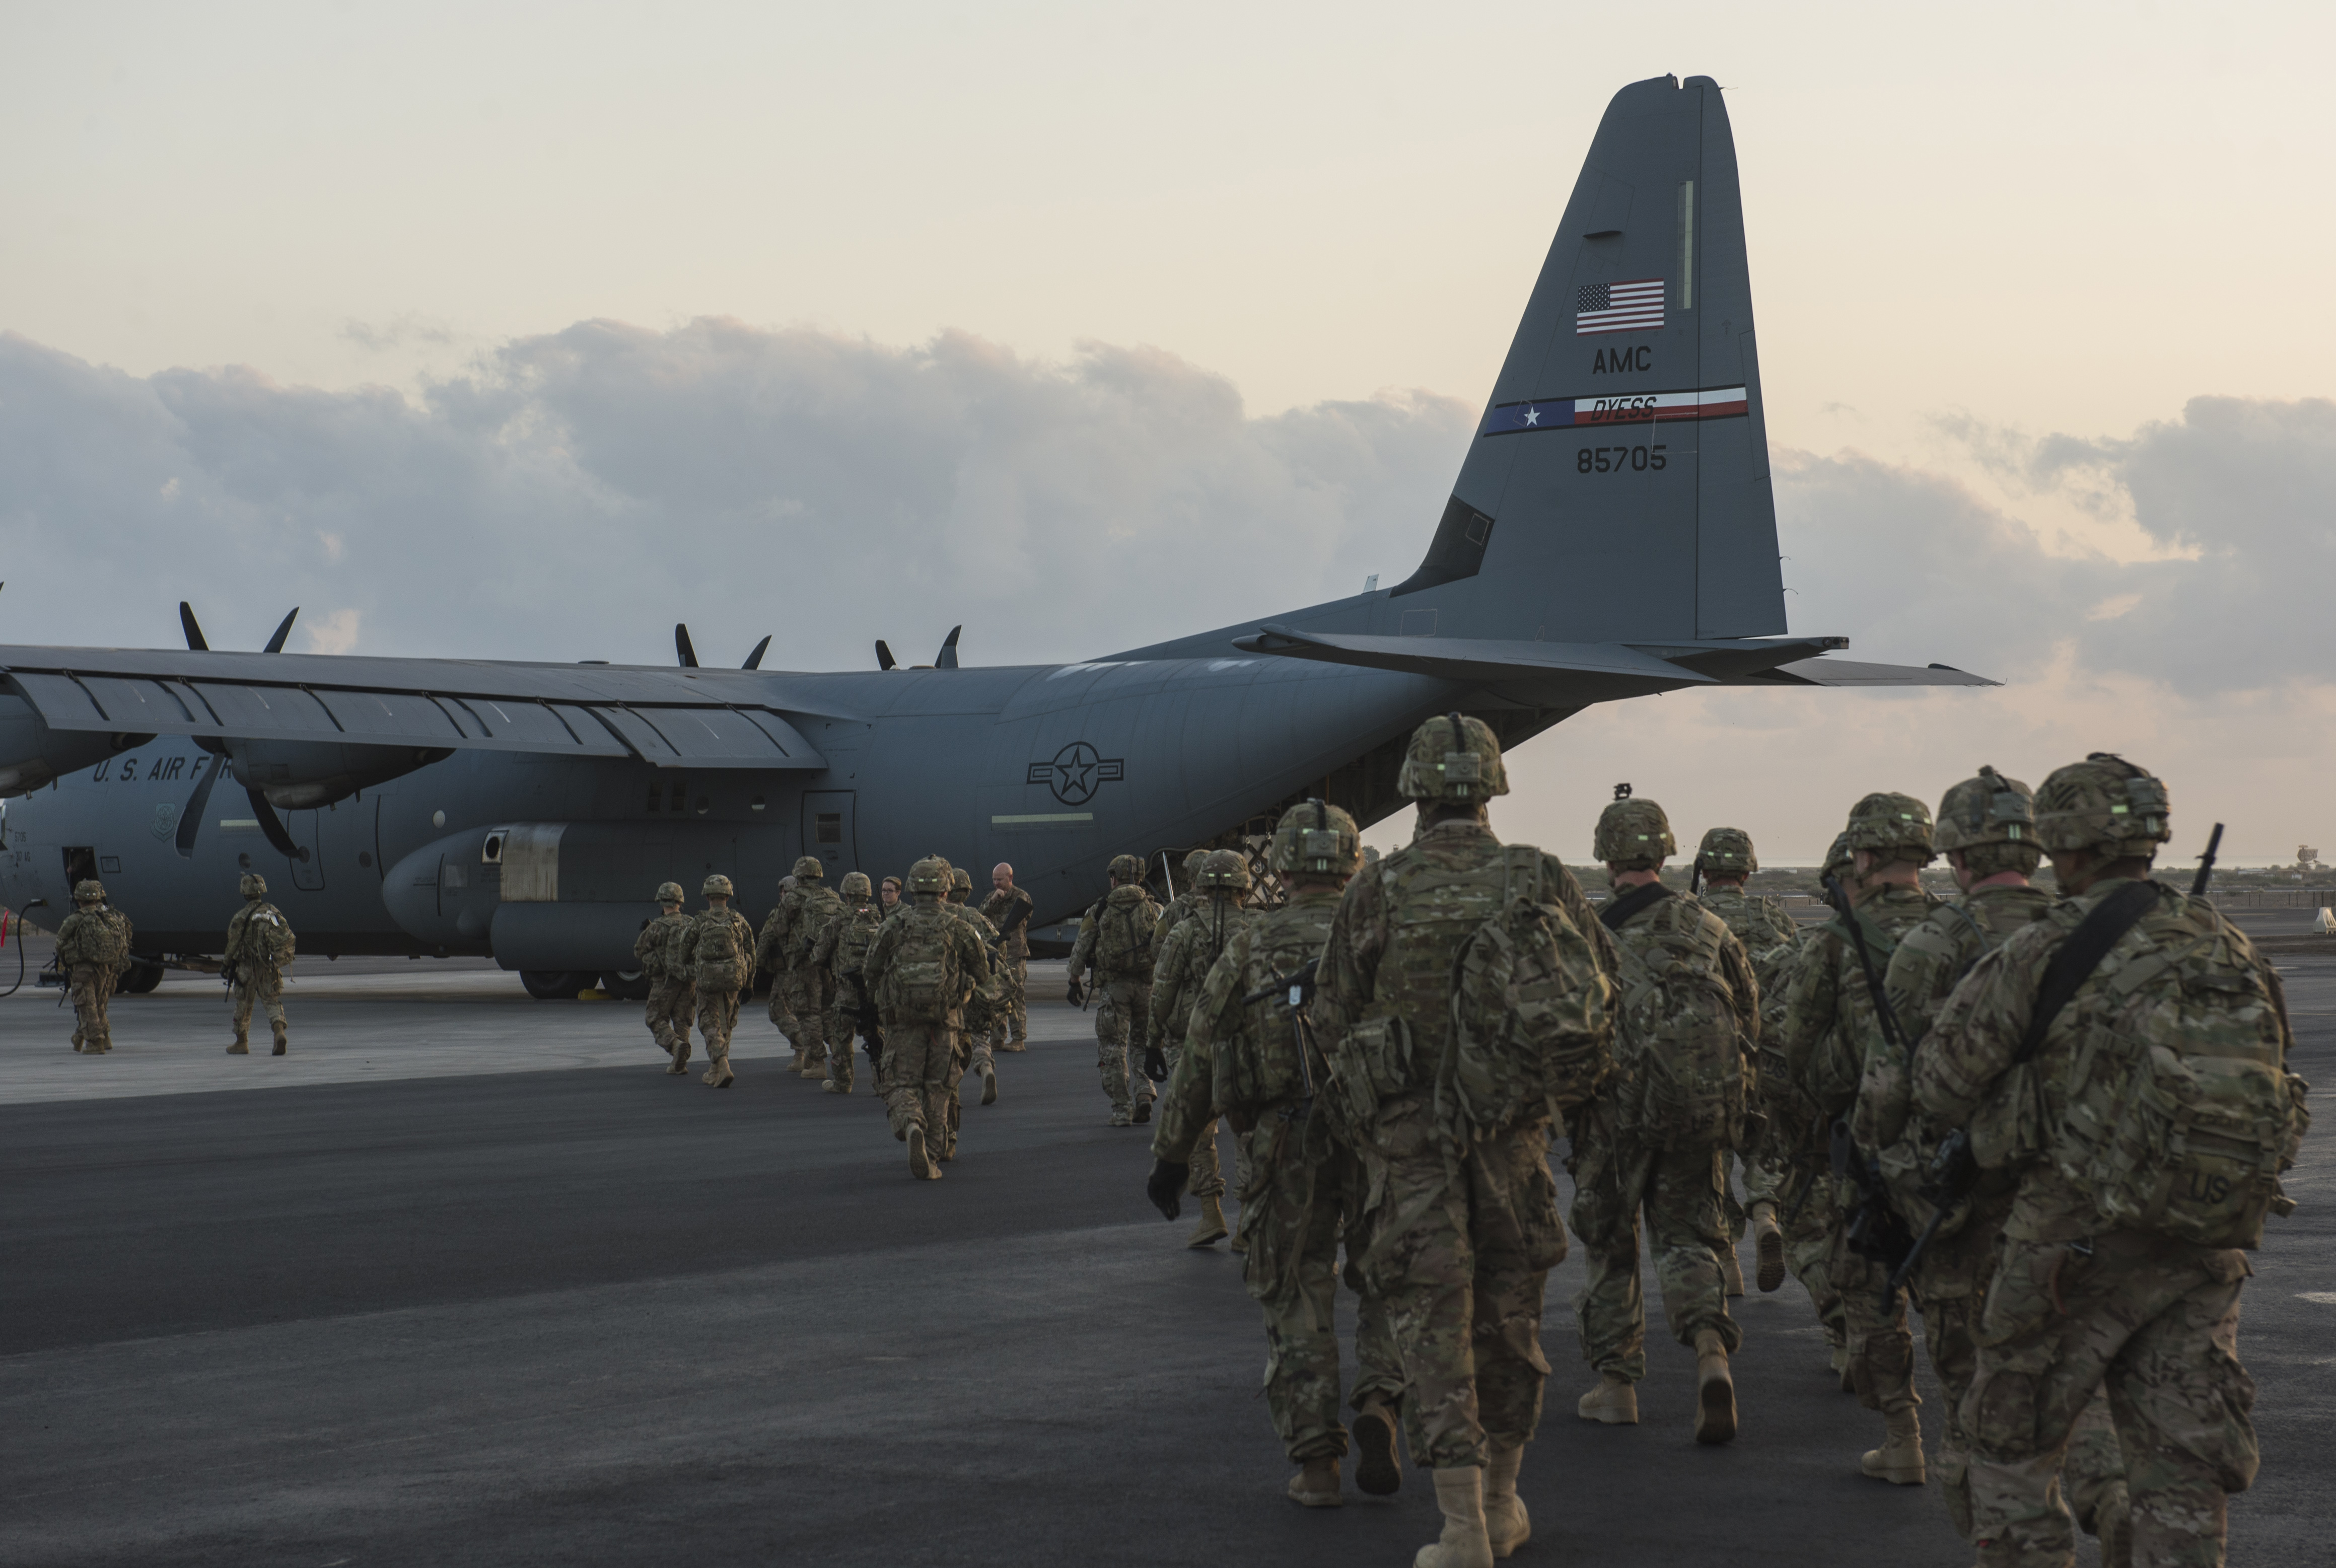 Soldiers from Bravo Company, 3rd Battalion, 15th Infantry Regiment, walk to a C-130J Super Hercules assigned to the 75th Expeditionary Airlift Squadron Feb. 13, 2016, at Camp Lemonnier, Djibouti. Pallets built with mission essential equipment and dozens of infantrymen were loaded onto the aircraft, deployed from Dyess Air Force Base, Texas, as part of the exercise. Within minutes of being fully loaded, the aircraft was preparing for takeoff. (U.S. Air Force photo by Senior Airman Peter Thompson)